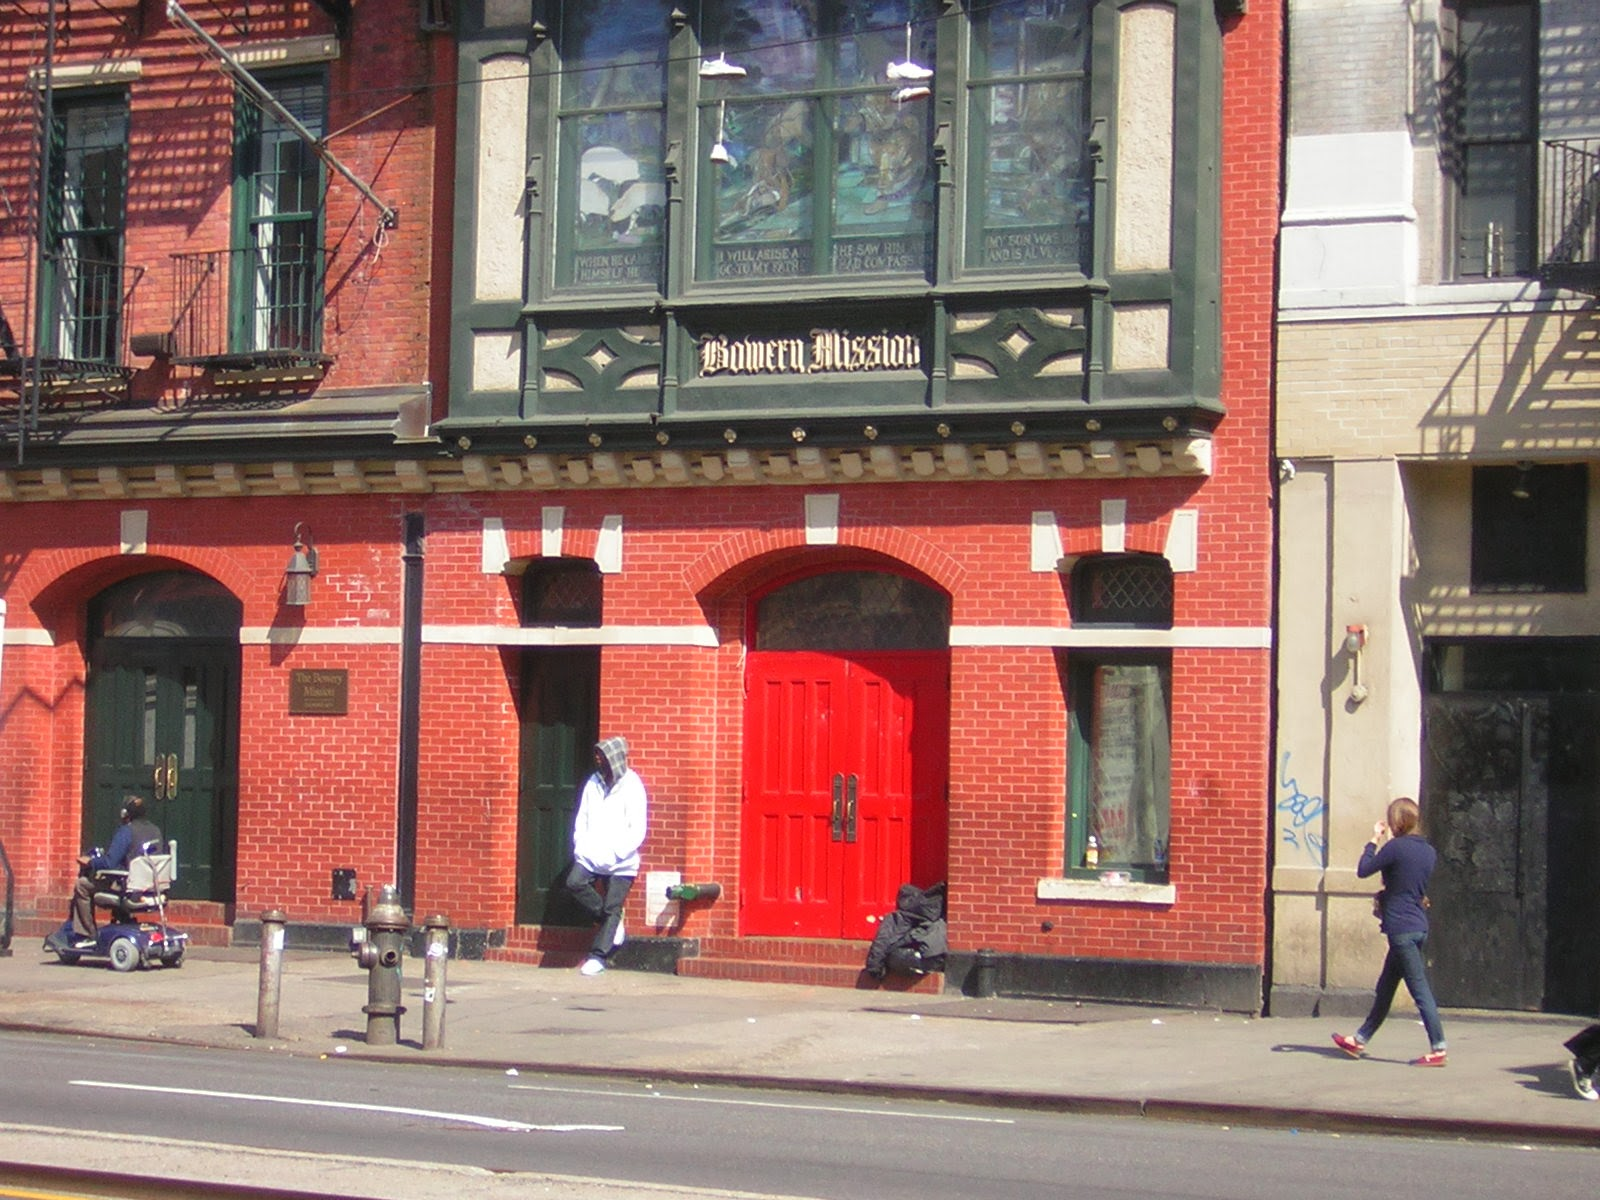 The Bowery Mission, NY( Source )